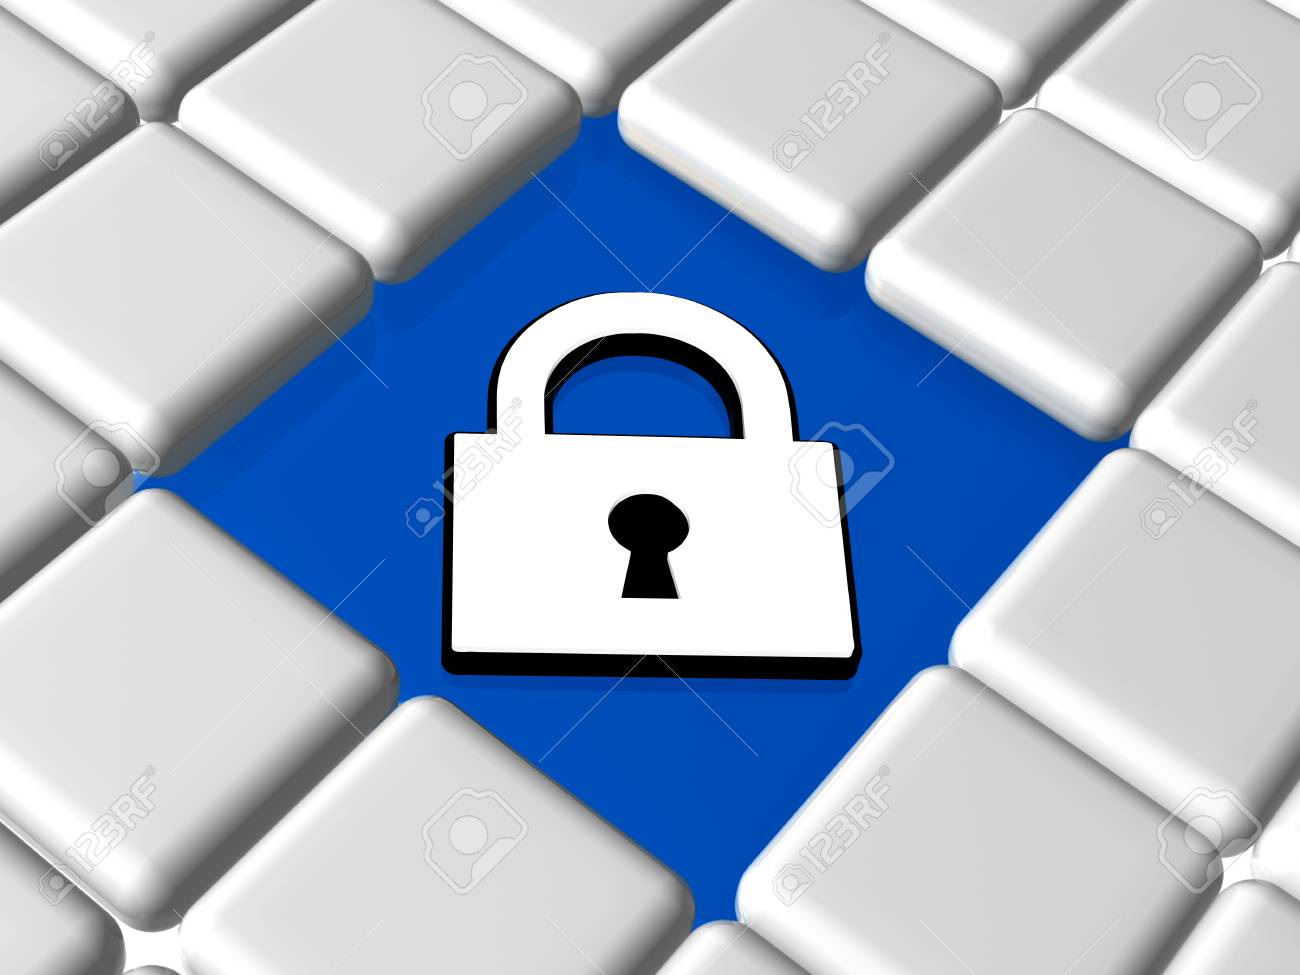 Padlock Sign 3d White Symbol Over Blue Between Grey Boxes Keyboard